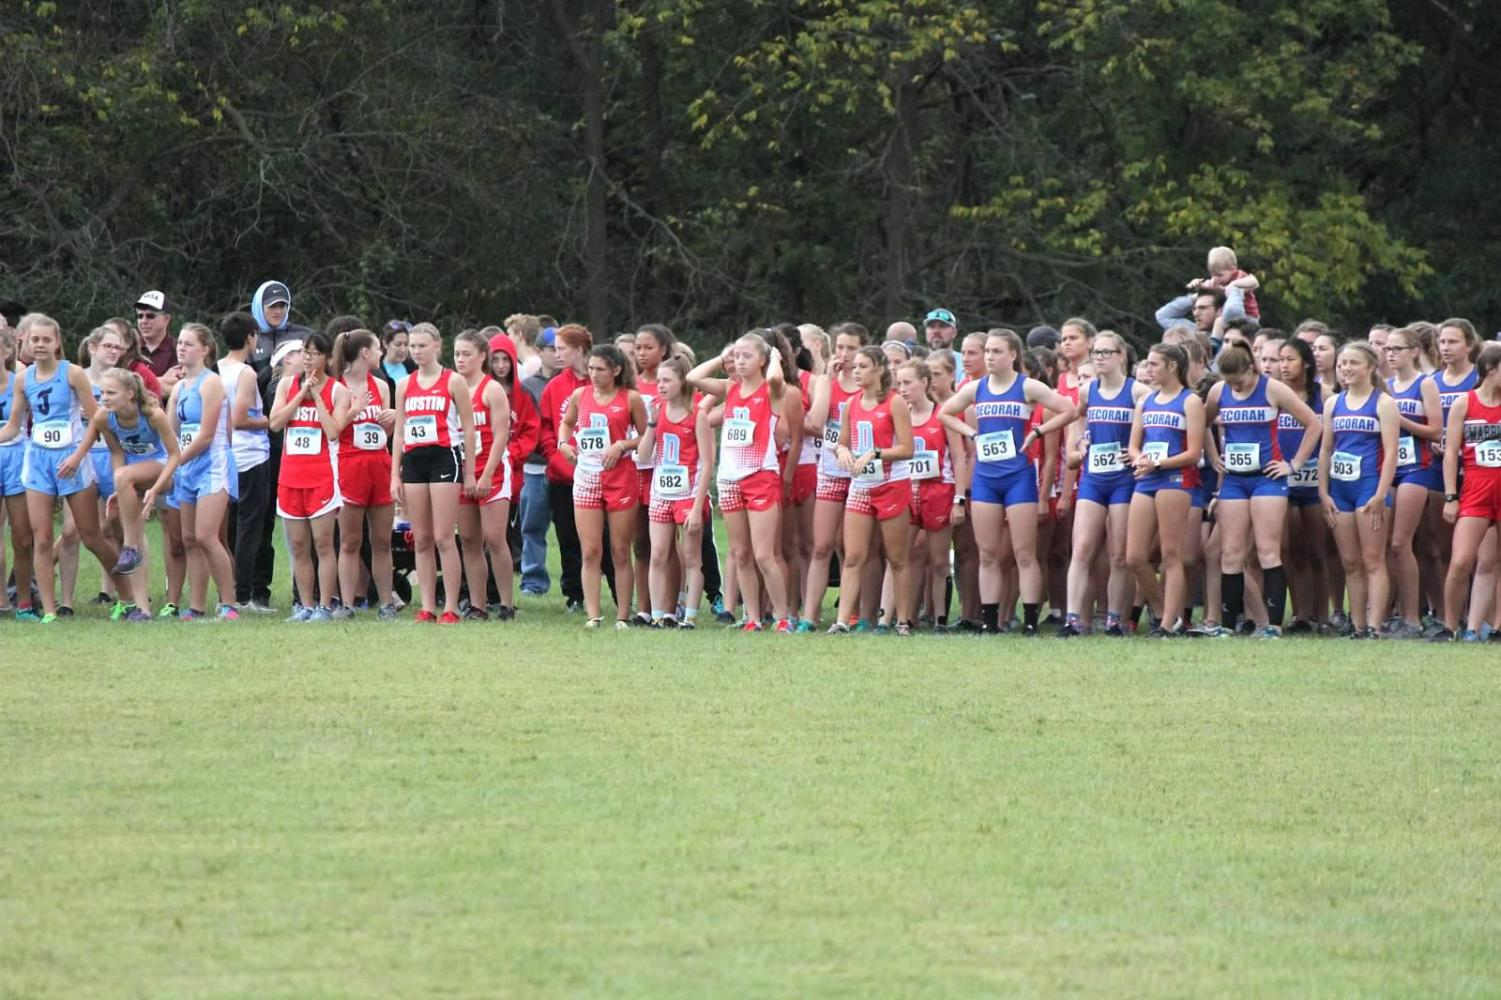 Teams line up for a meet at Luther College in Decorah, Iowa